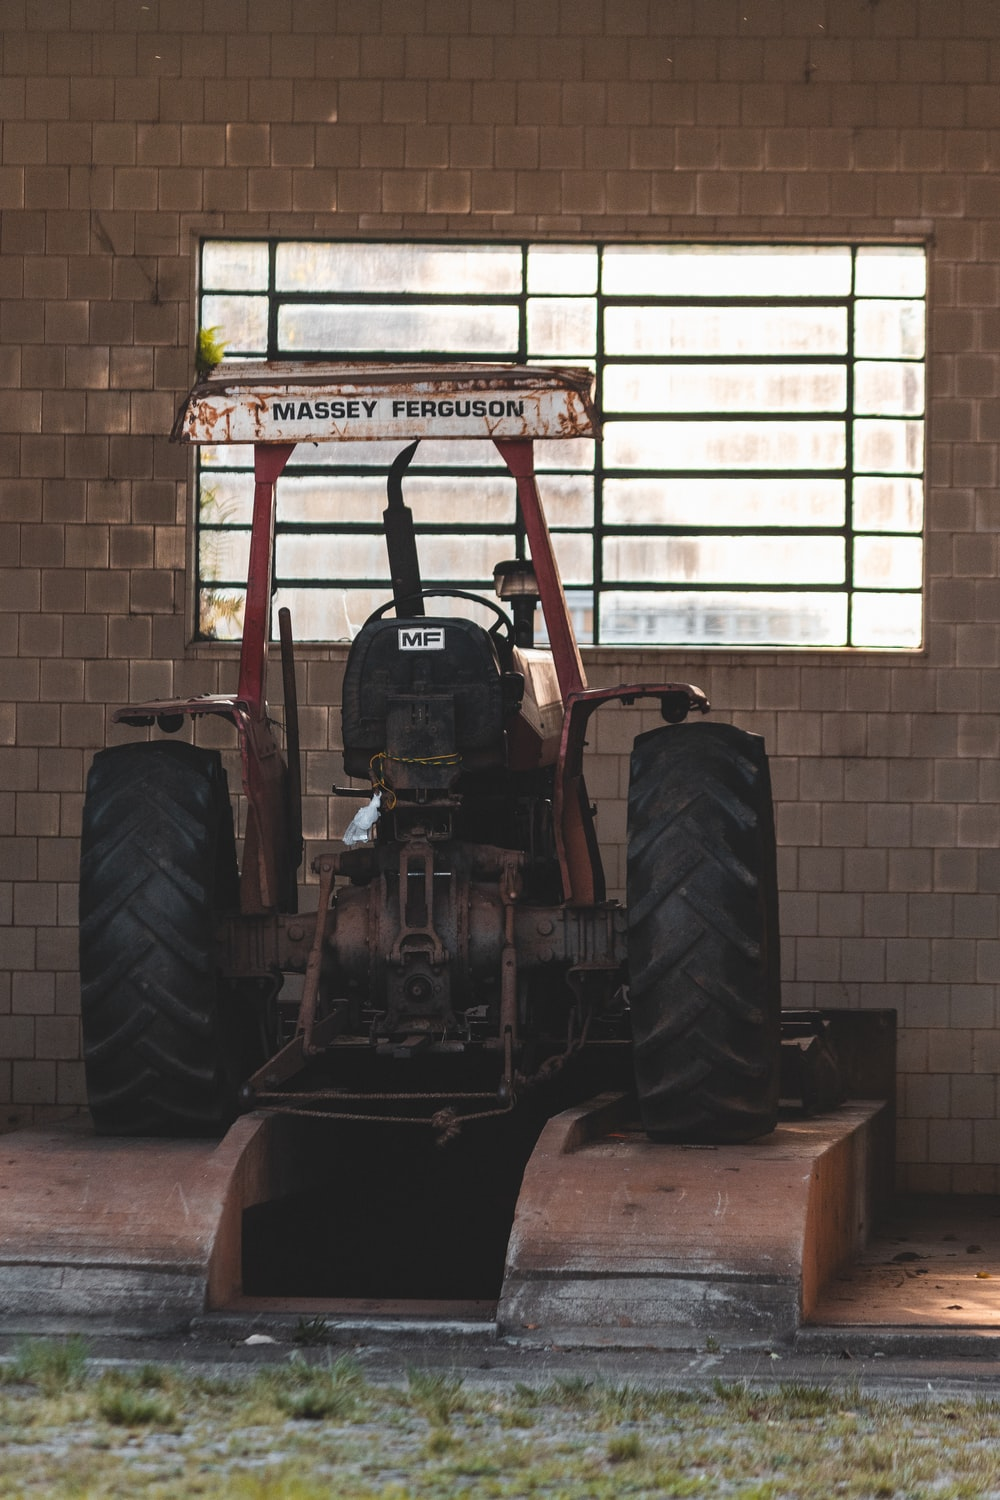 red and black tractor in front of white brick wall